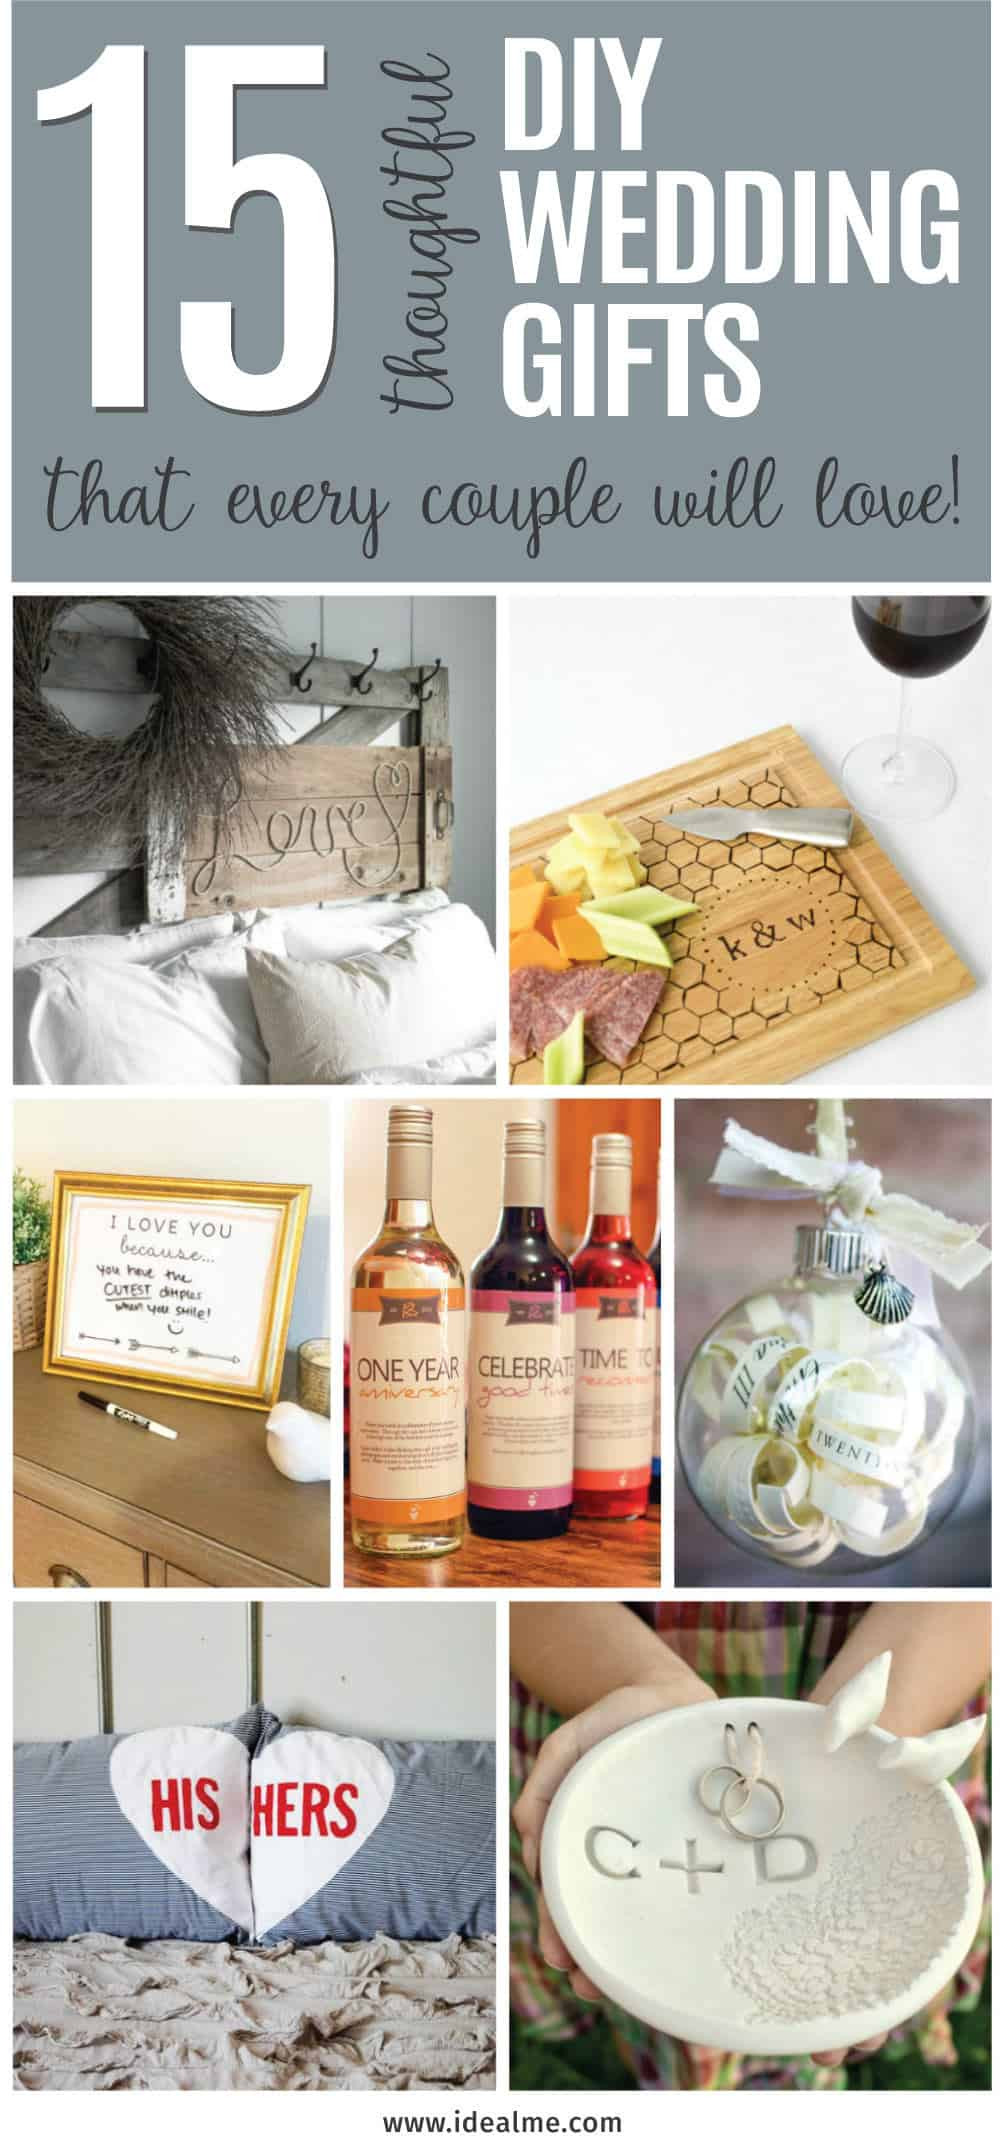 Homemade Wedding Gifts  15 Thoughtful DIY Wedding Gifts that Every Couple Will